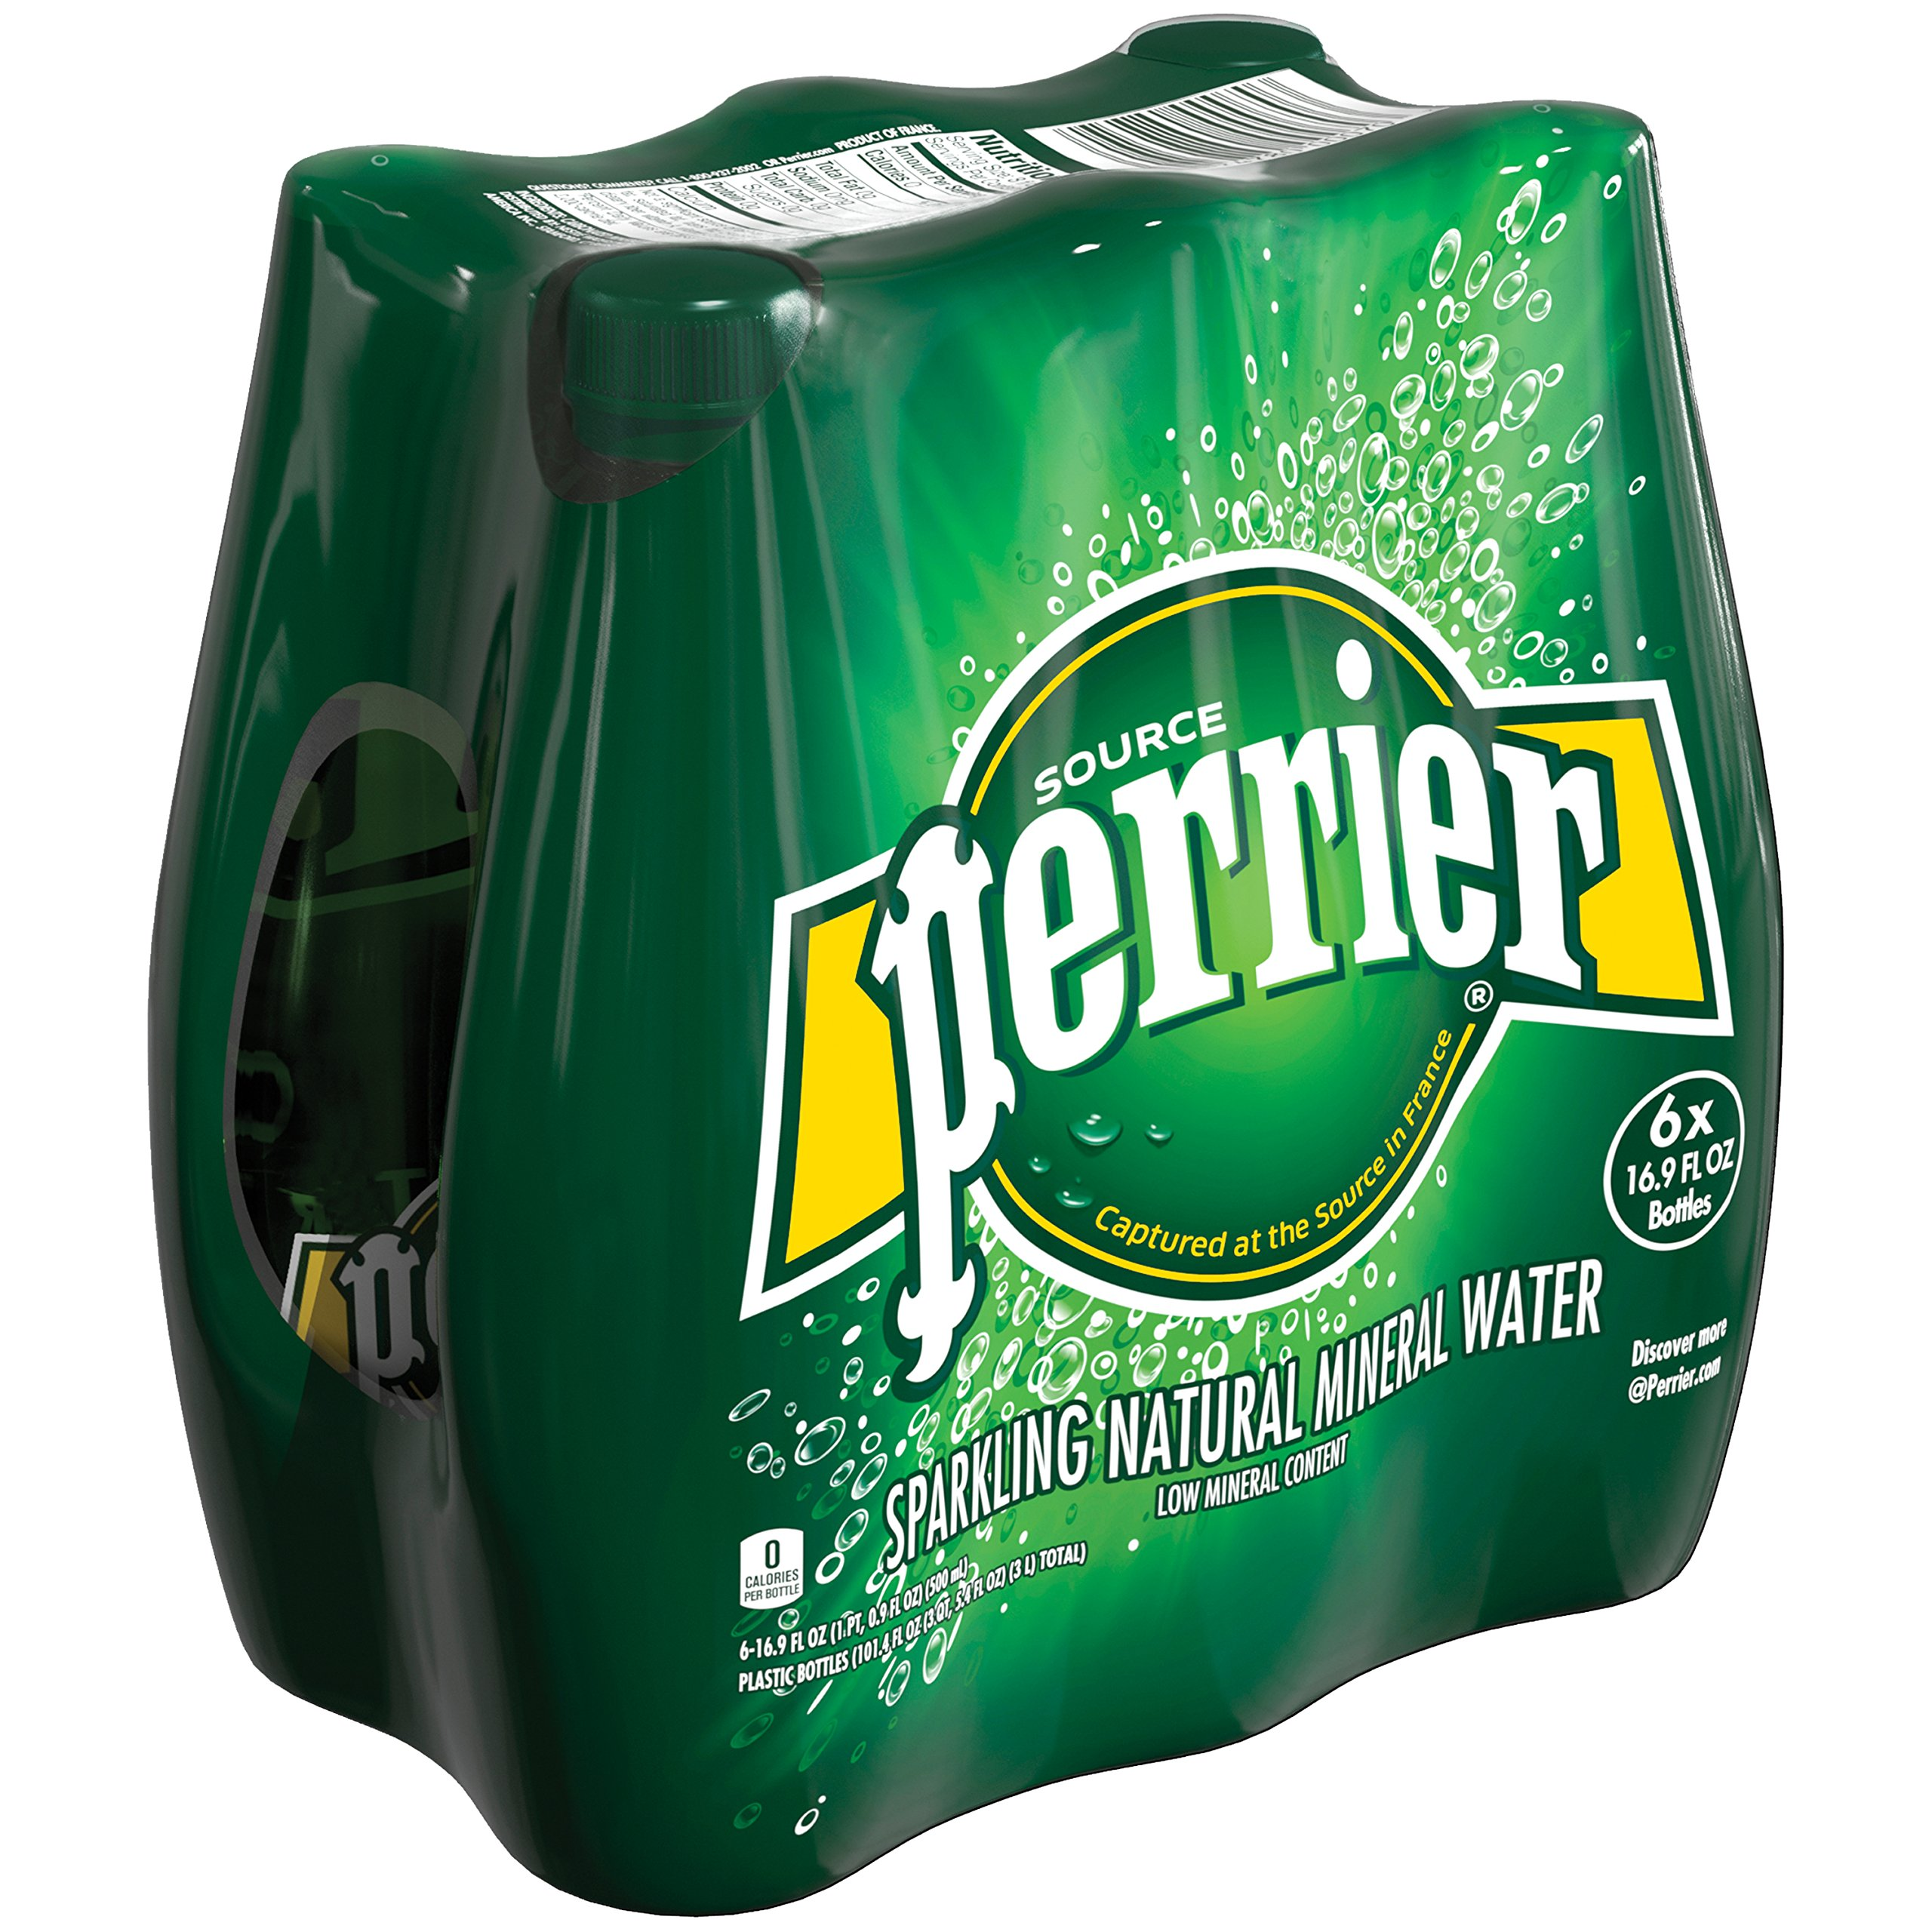 Perrier Carbonated Mineral Water, 16.9 fl oz. Plastic Bottles (6 Count)